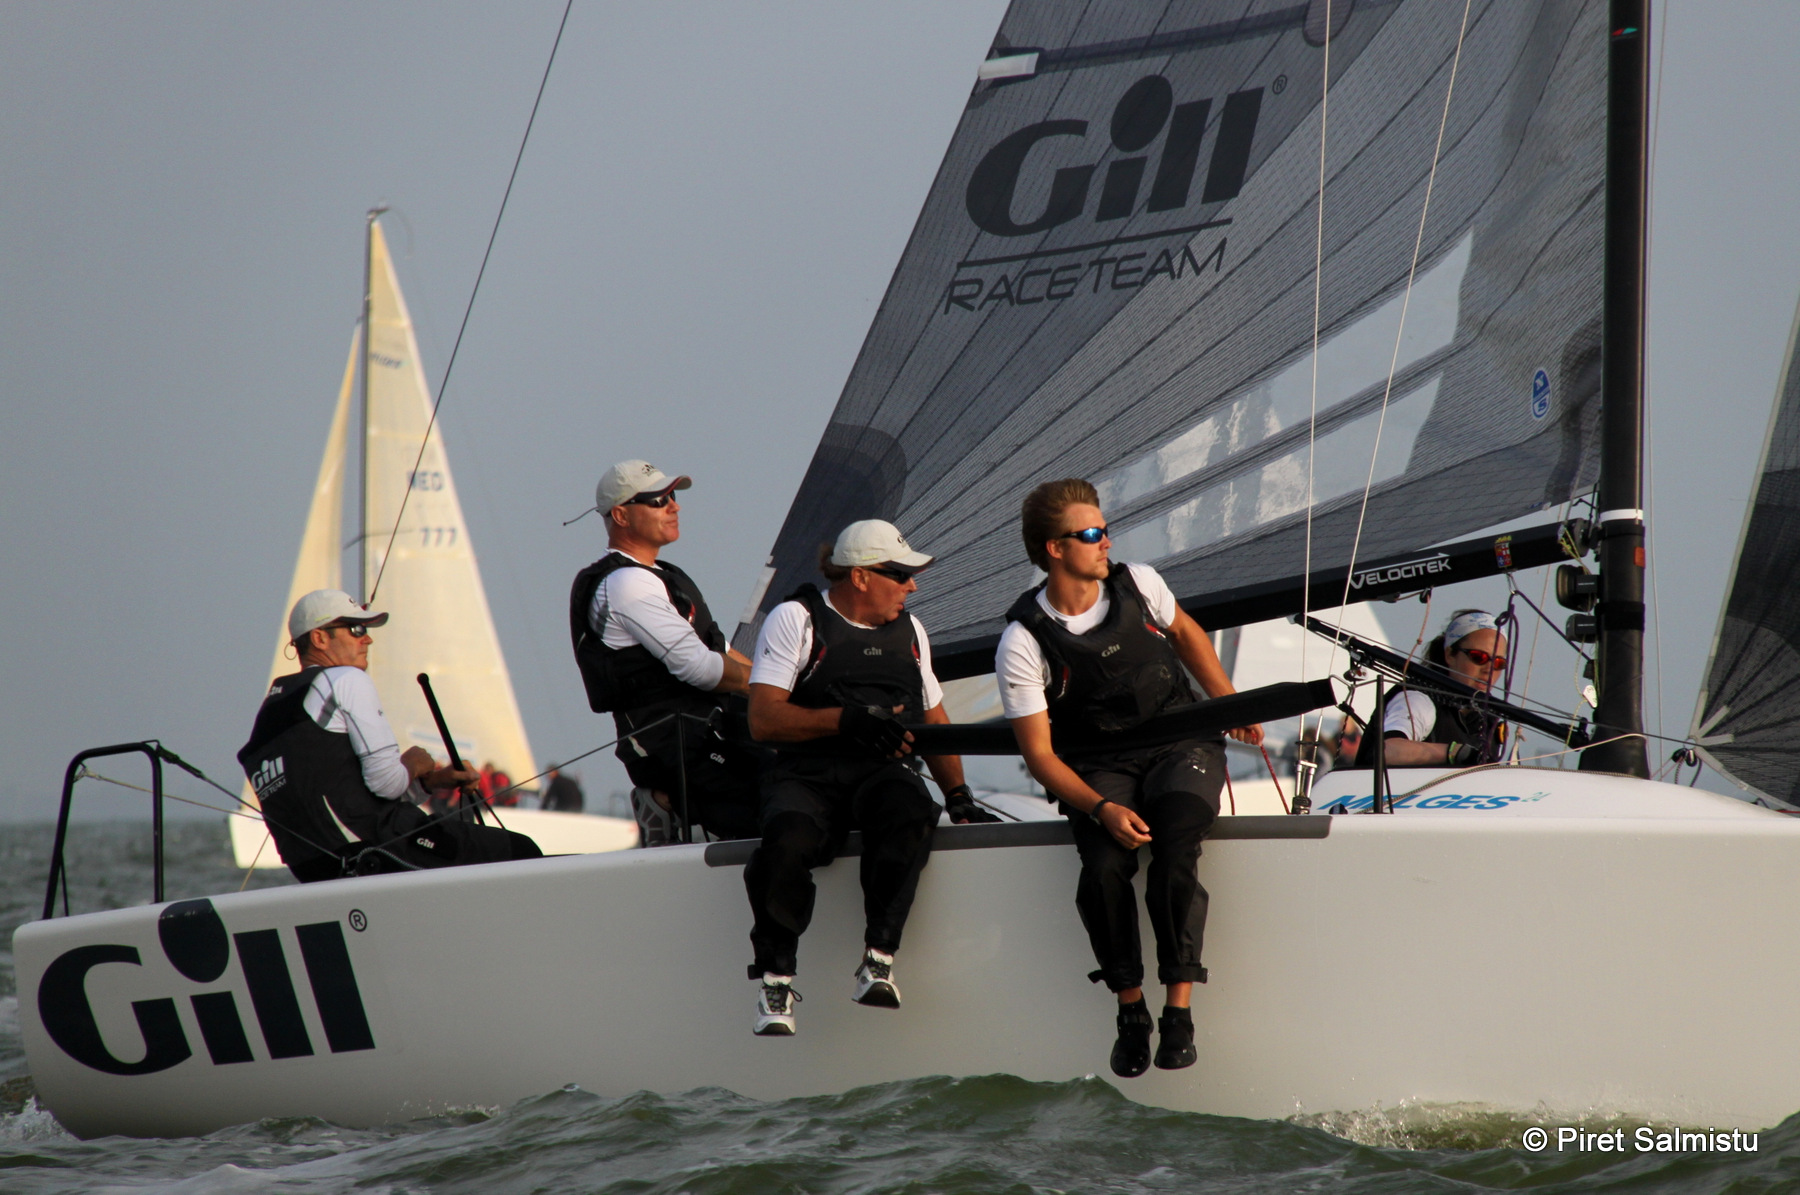 Gill Race Team GBR694